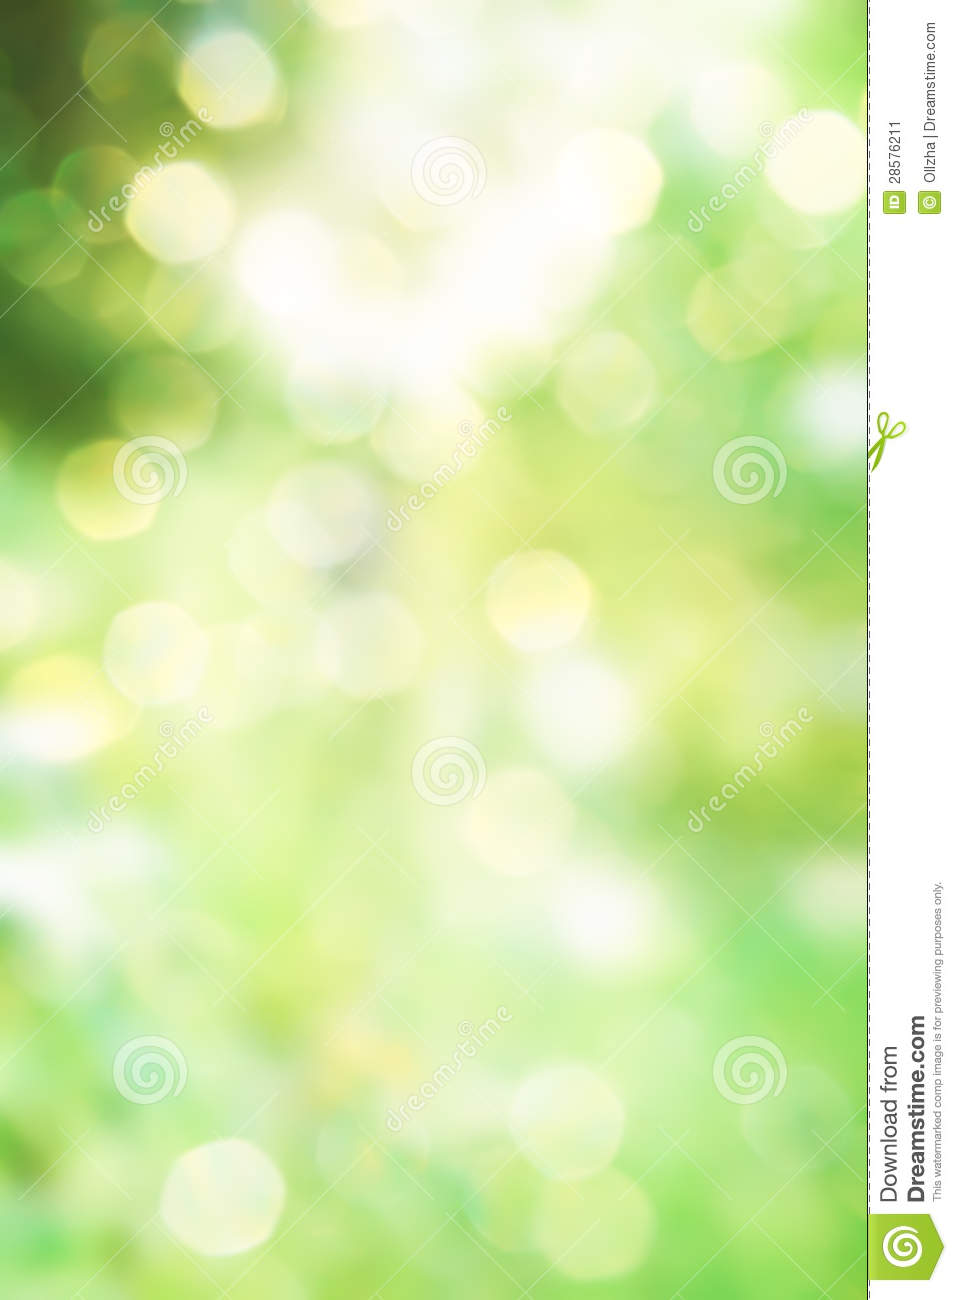 Nature Images 2mb: Abstract Green Spring Nature Background Stock Image